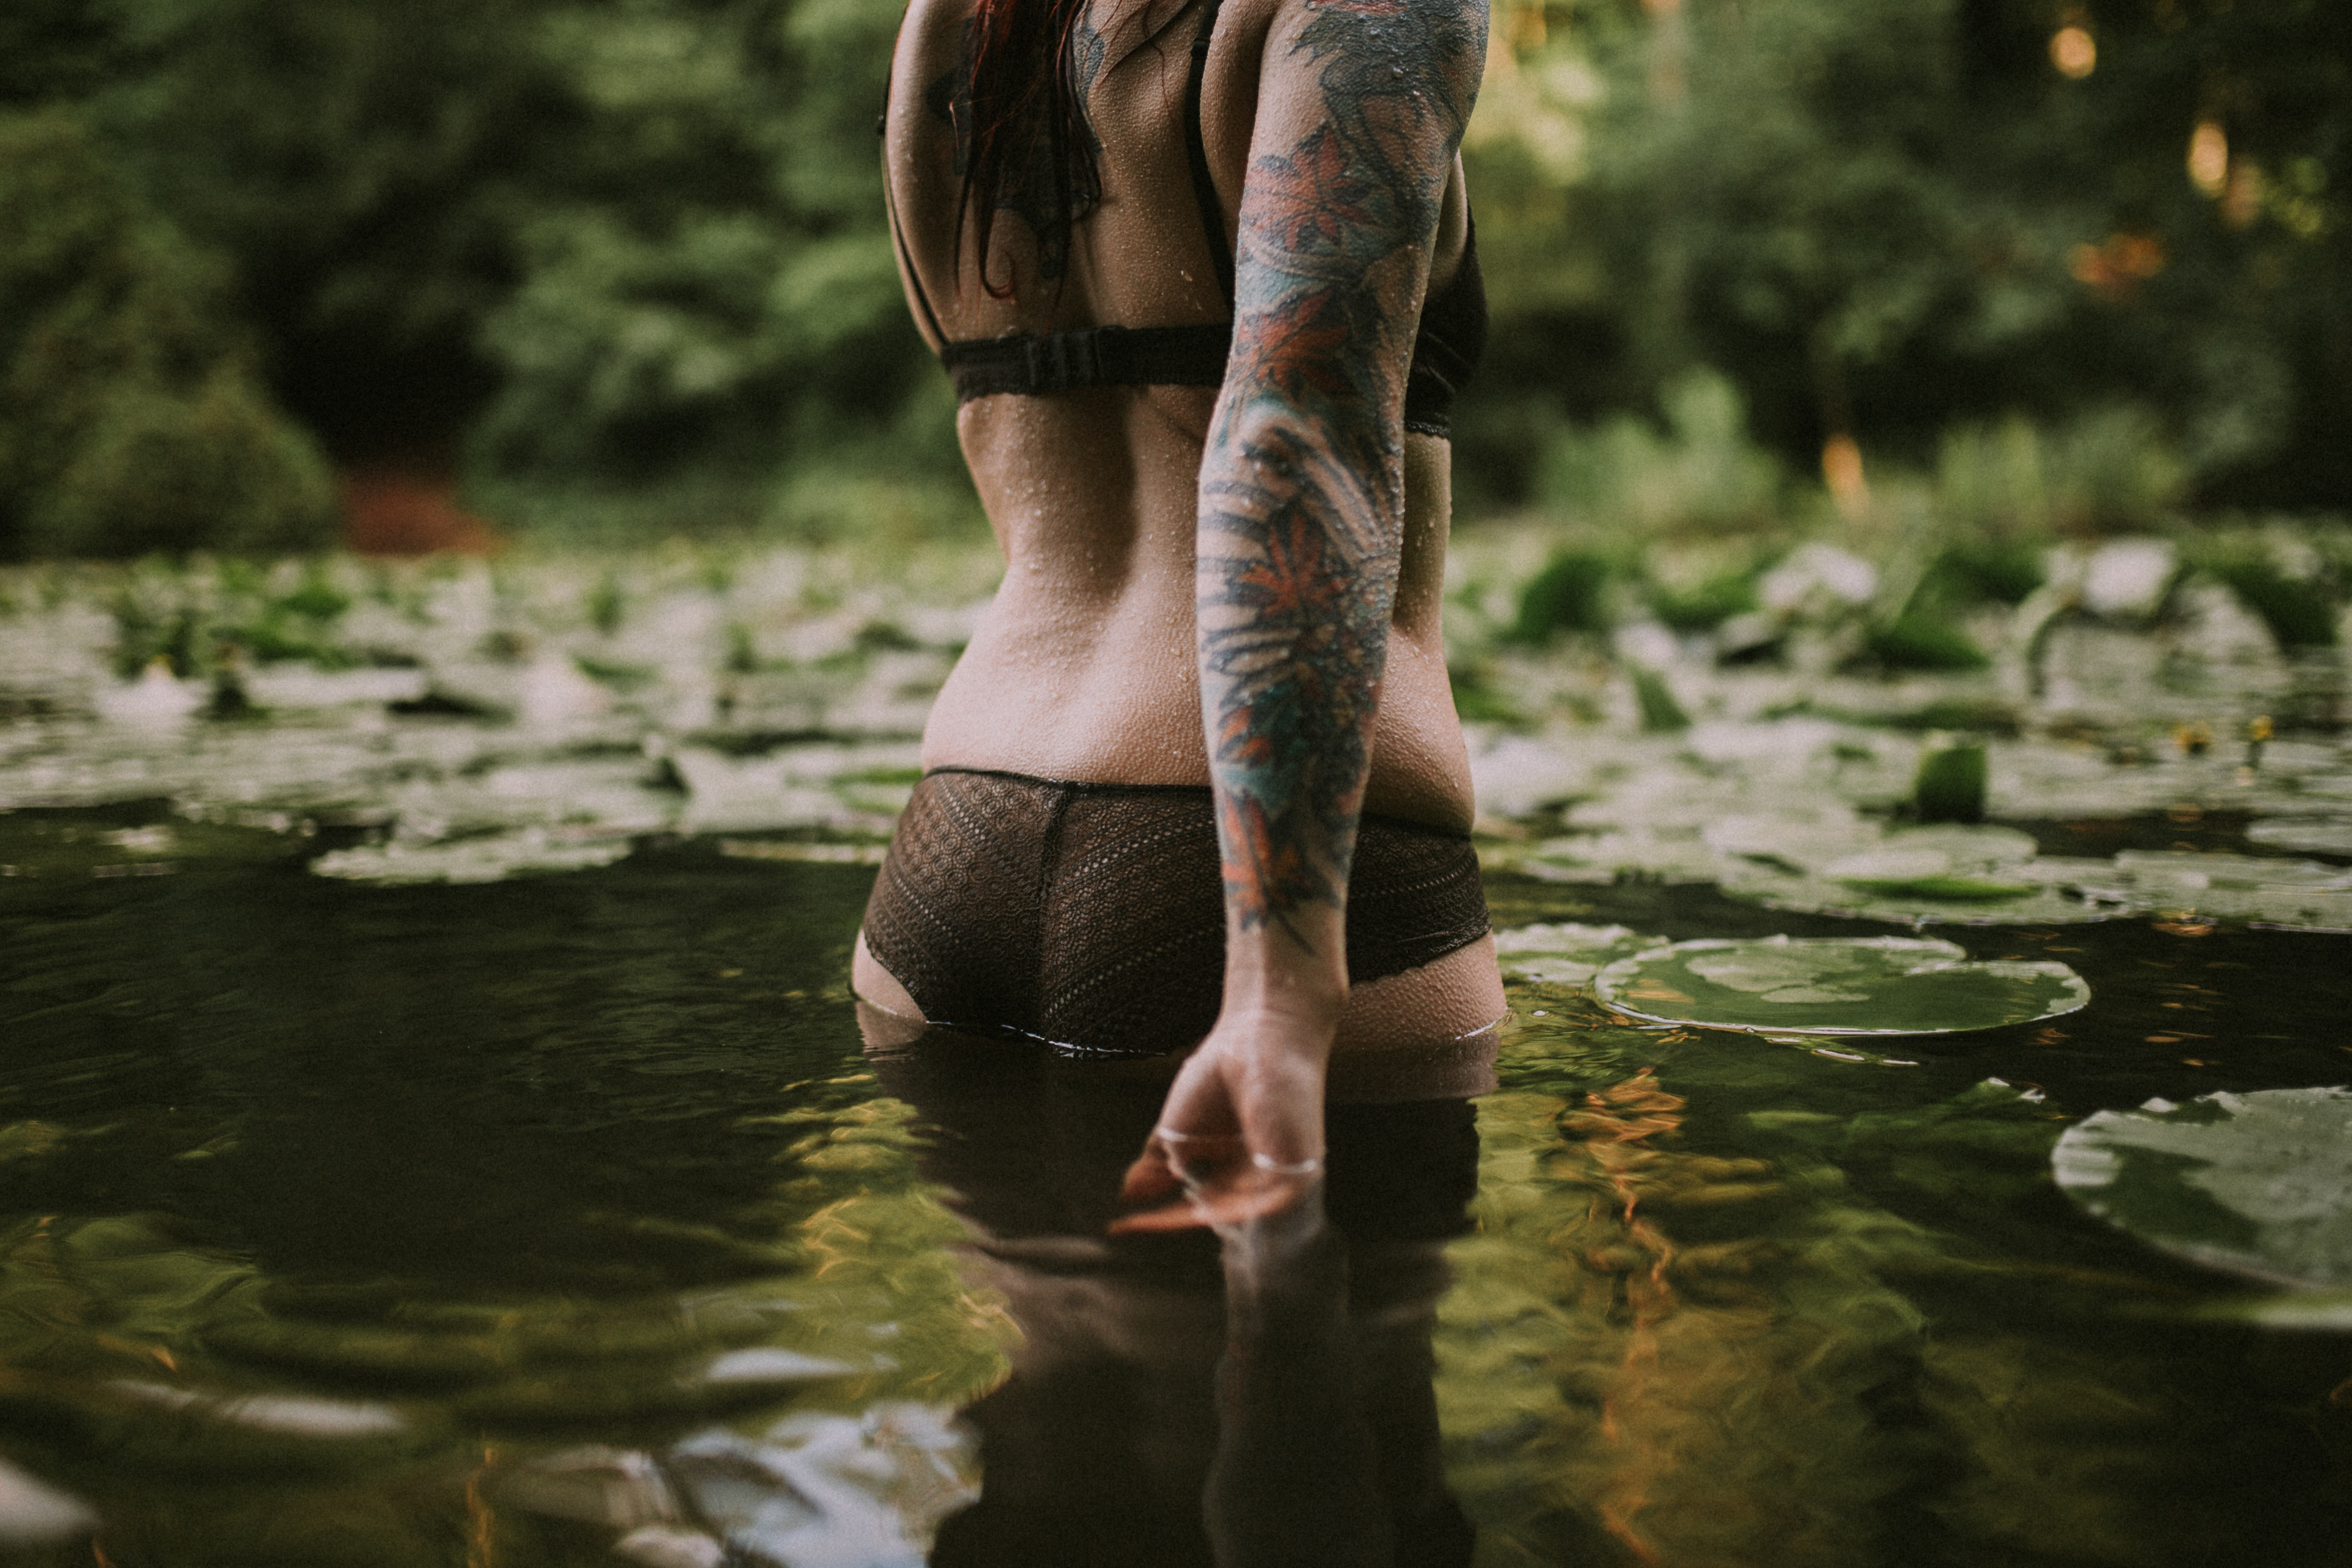 Woman with an arm sleeve tattoo wading in a pond